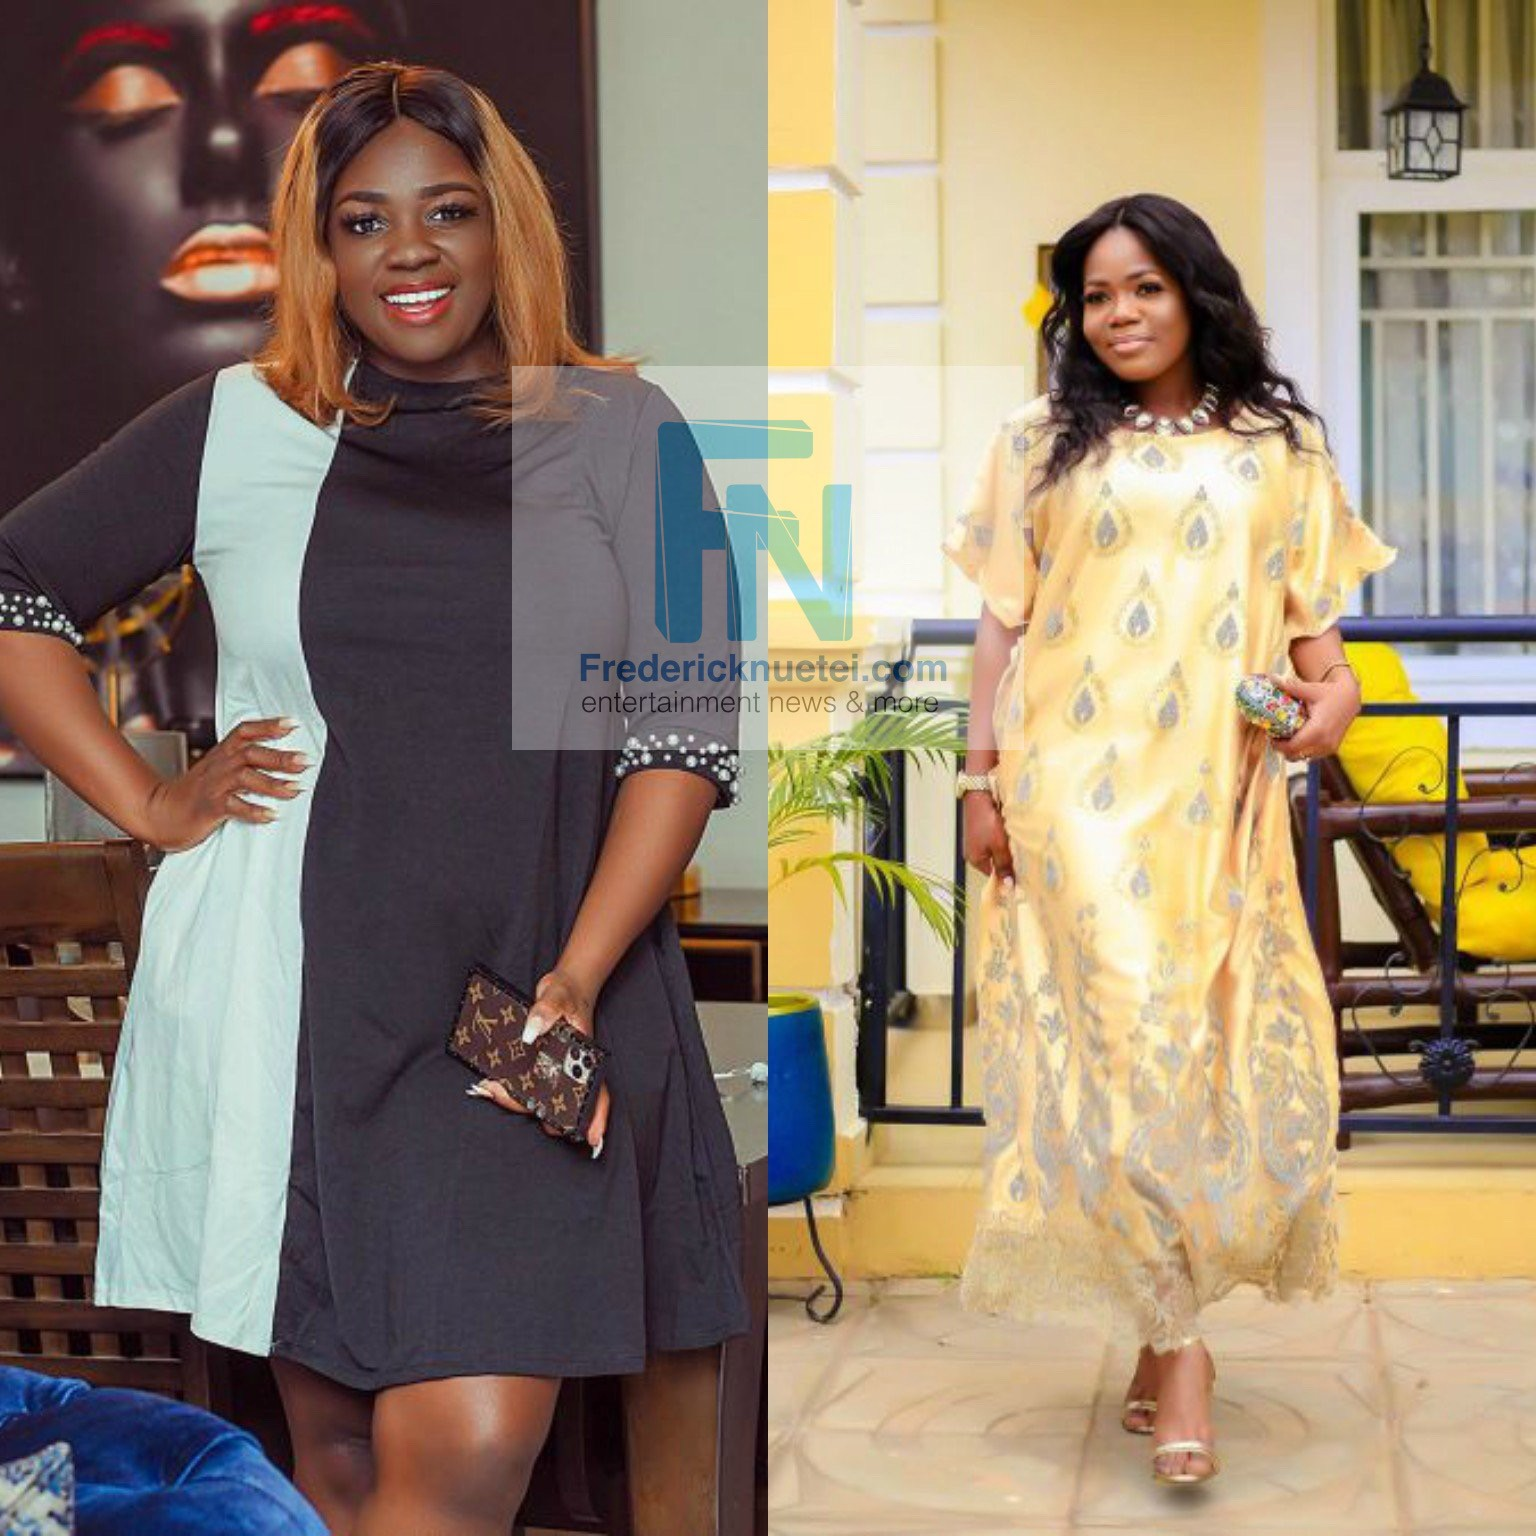 'To Those Who Make Mockery Of Old Age, May You Not Live To Experience The Joy And Beauty Of It' - Mzbel To Tracey Boakye